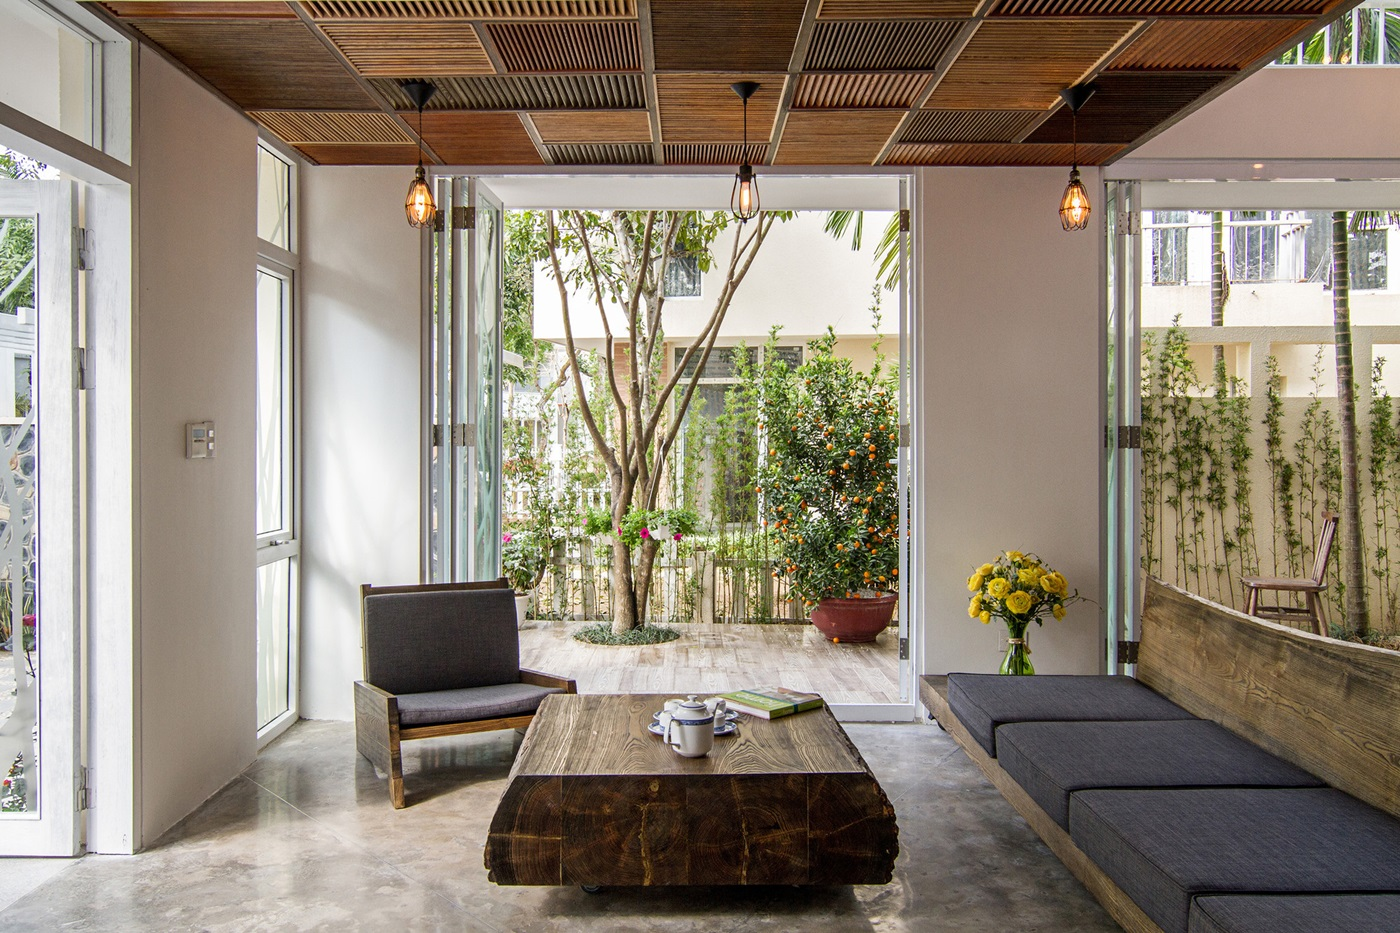 Raw finishes and fascinating interior elements by ahl for Interior design in vietnam